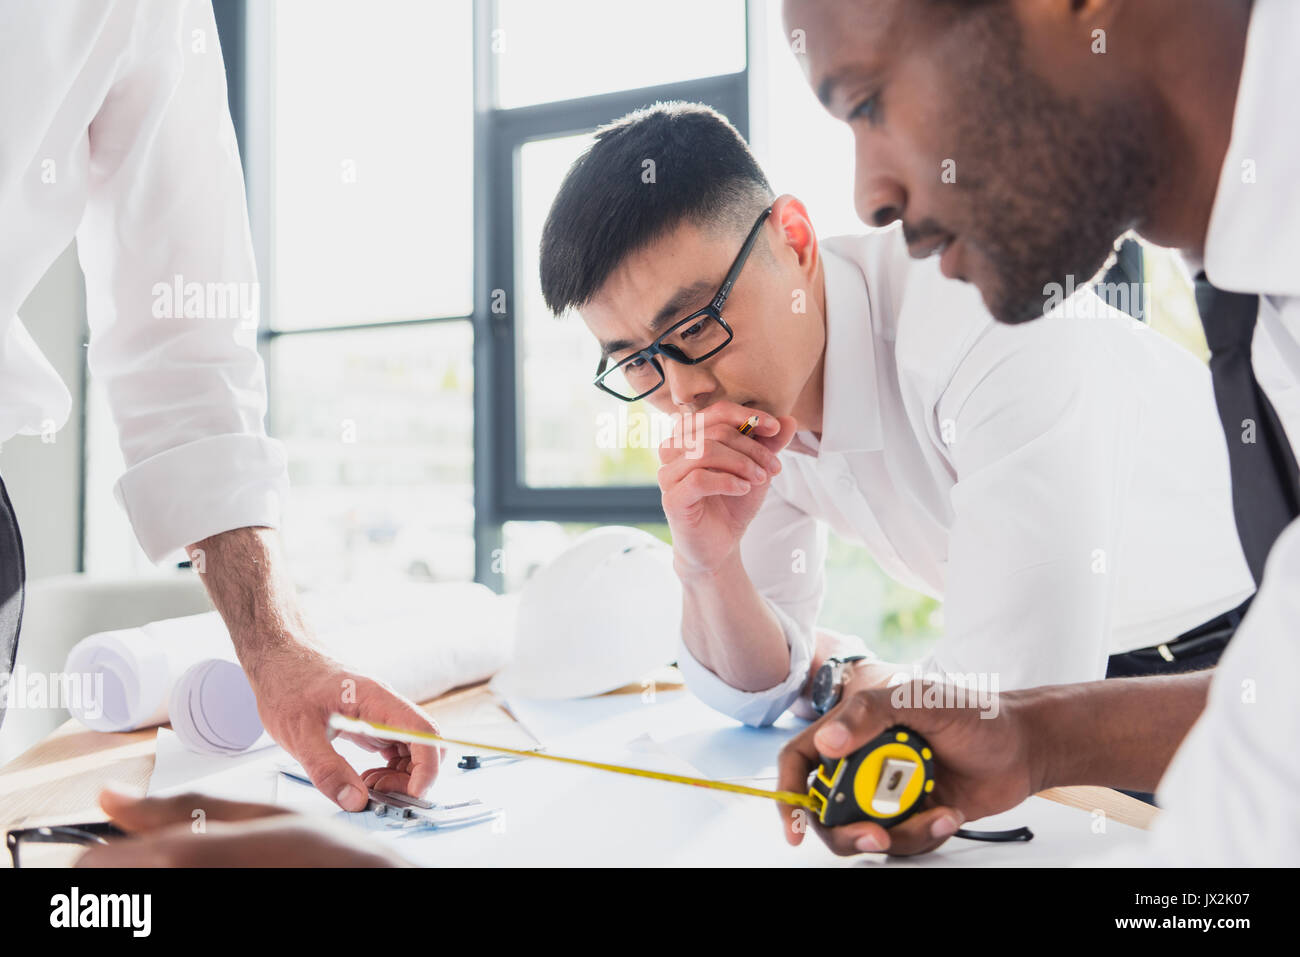 professional architects in formal wear working at modern office, businessmen group - Stock Image